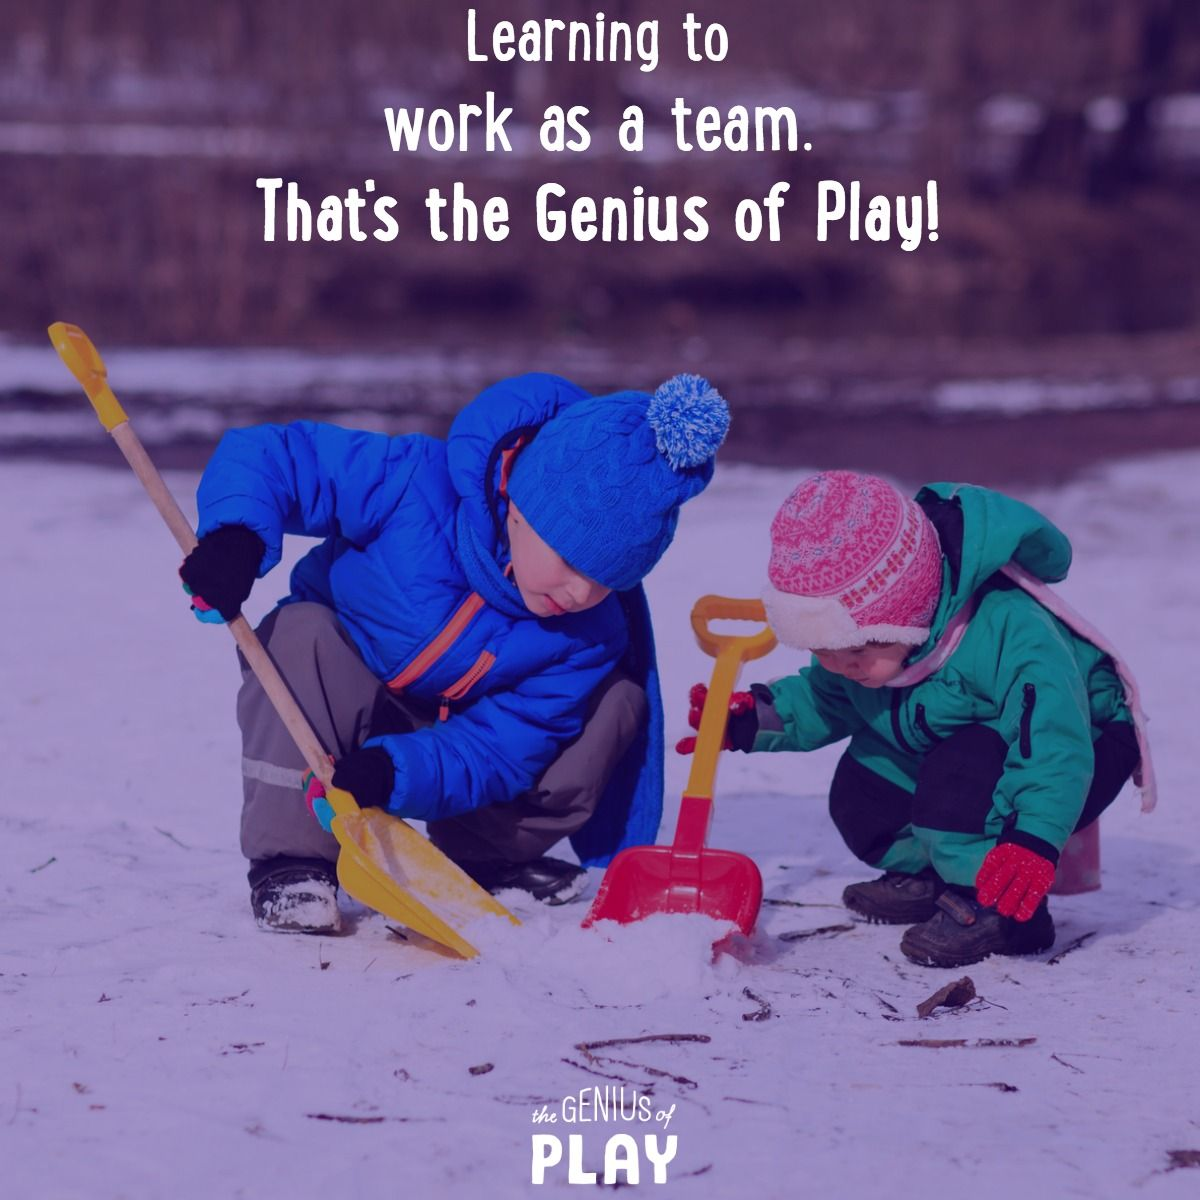 Simple playtime activities like digging in the snow together help build social skills that last a lifetime! https://t.co/0tZnoRUdEd